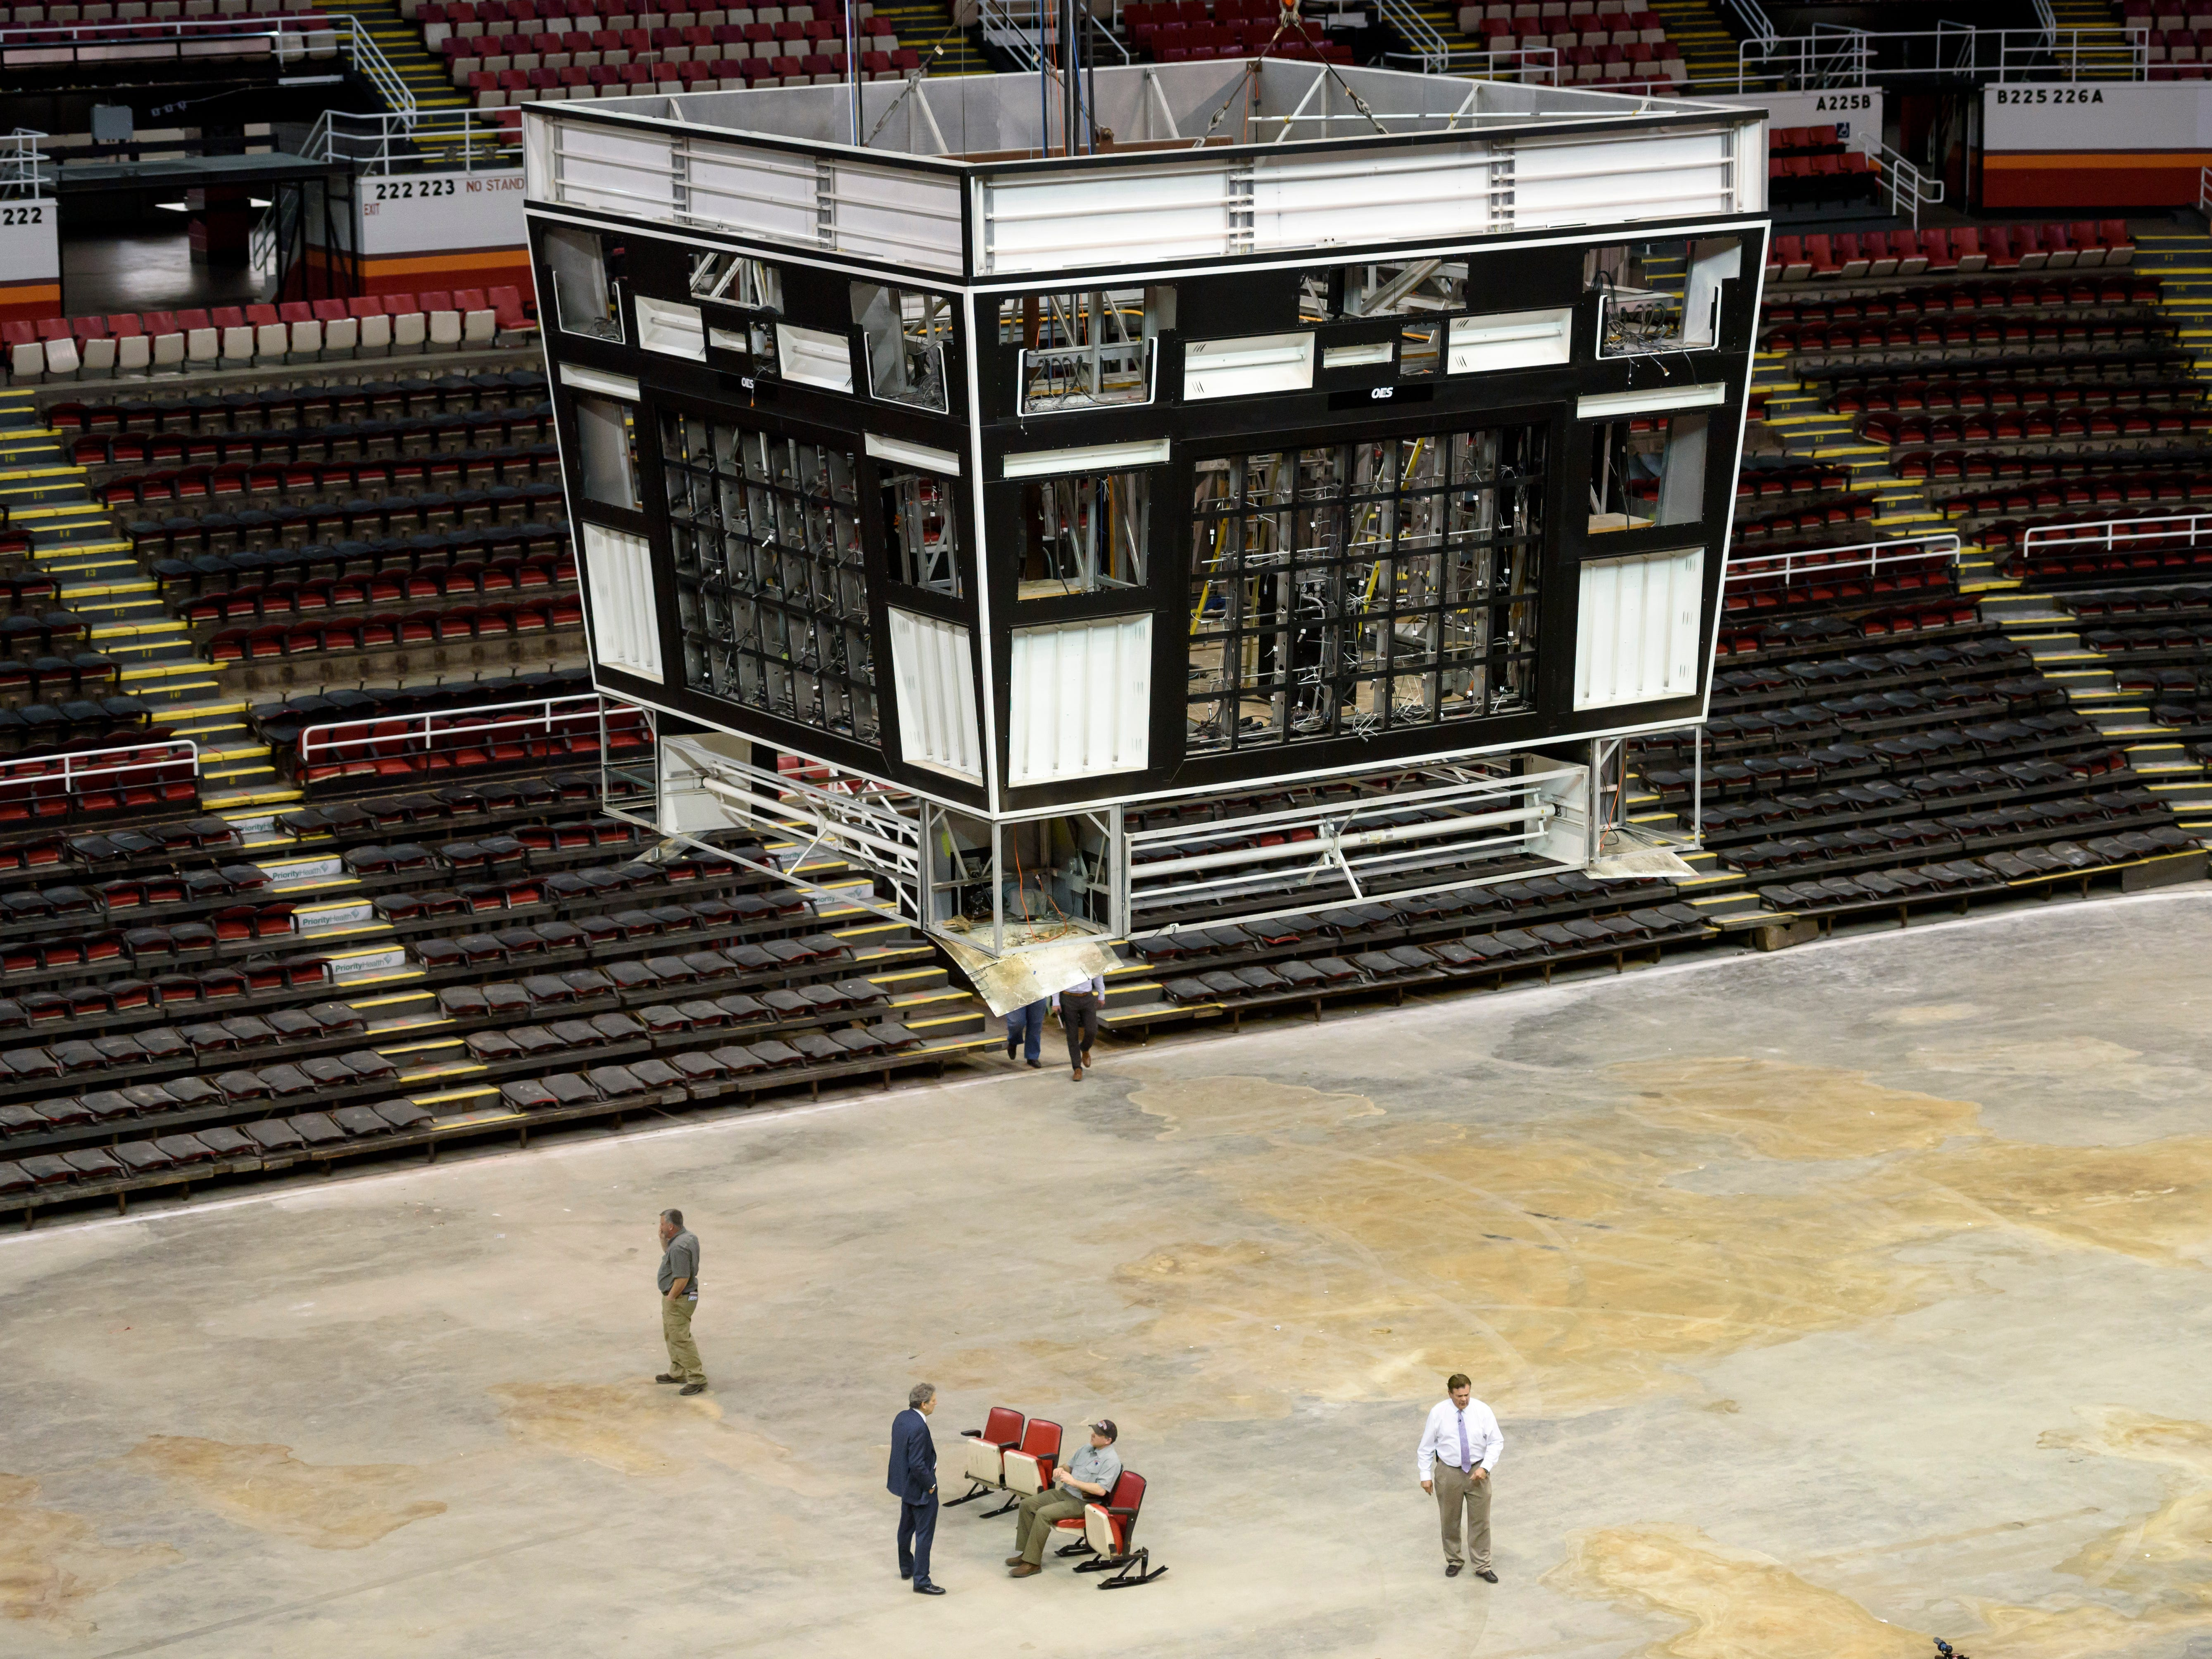 Workers at Joe Louis Arena in Detroit disconnect the seats from the concrete on May 1, 2018.  The sale of about 14,000 seats brought in $1.4 million for the city of Detroit. The building likely will be razed in 2019.